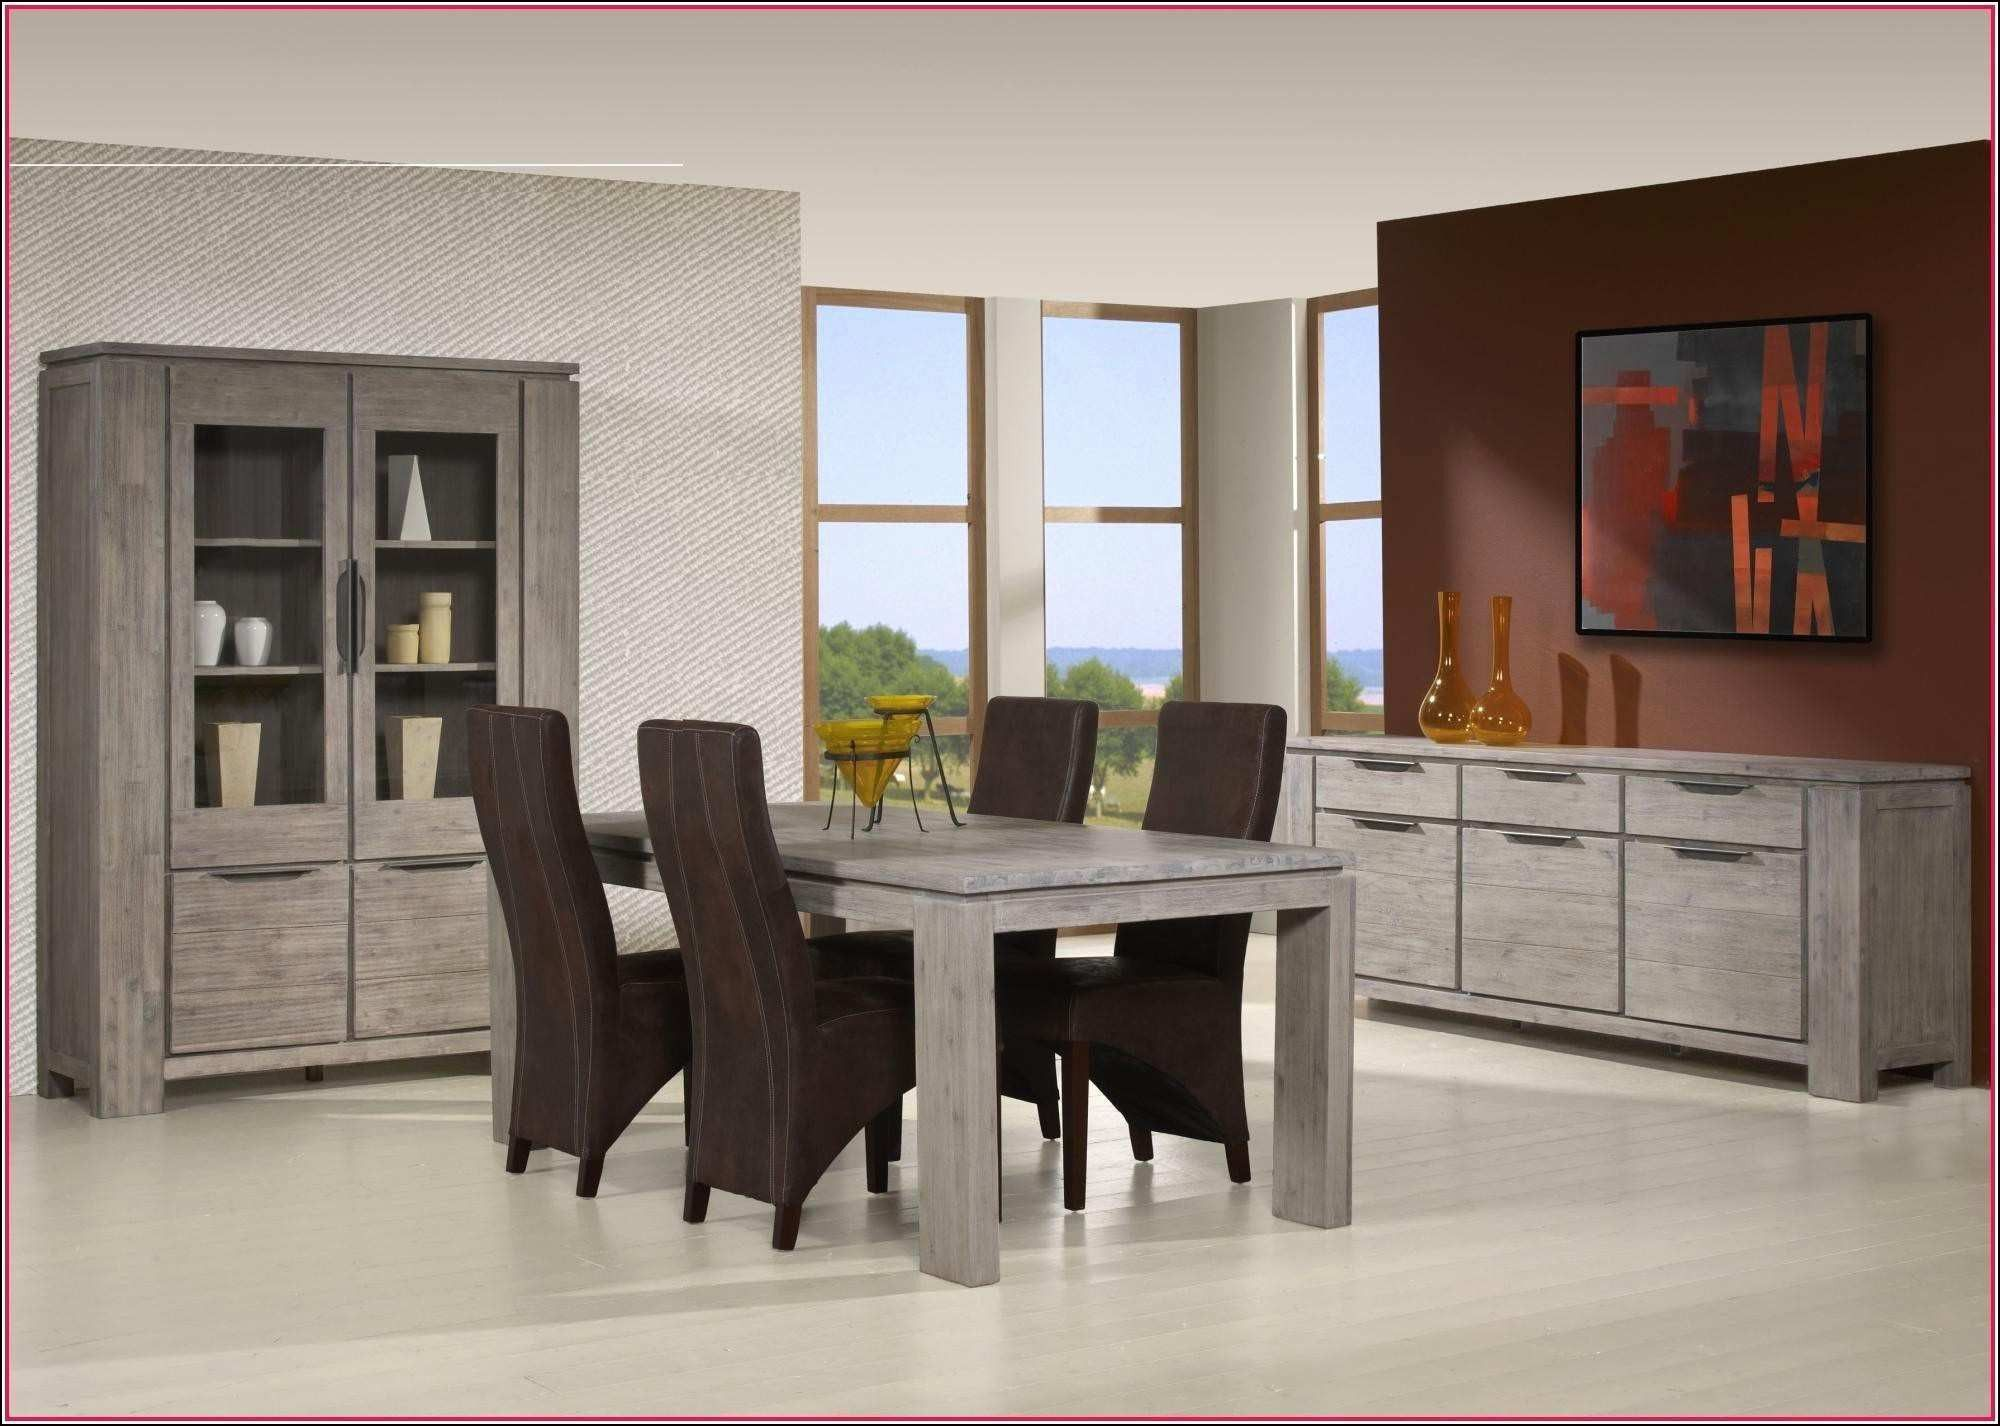 Salon Salle A Manger Conforama Dining Table Home Home Decor